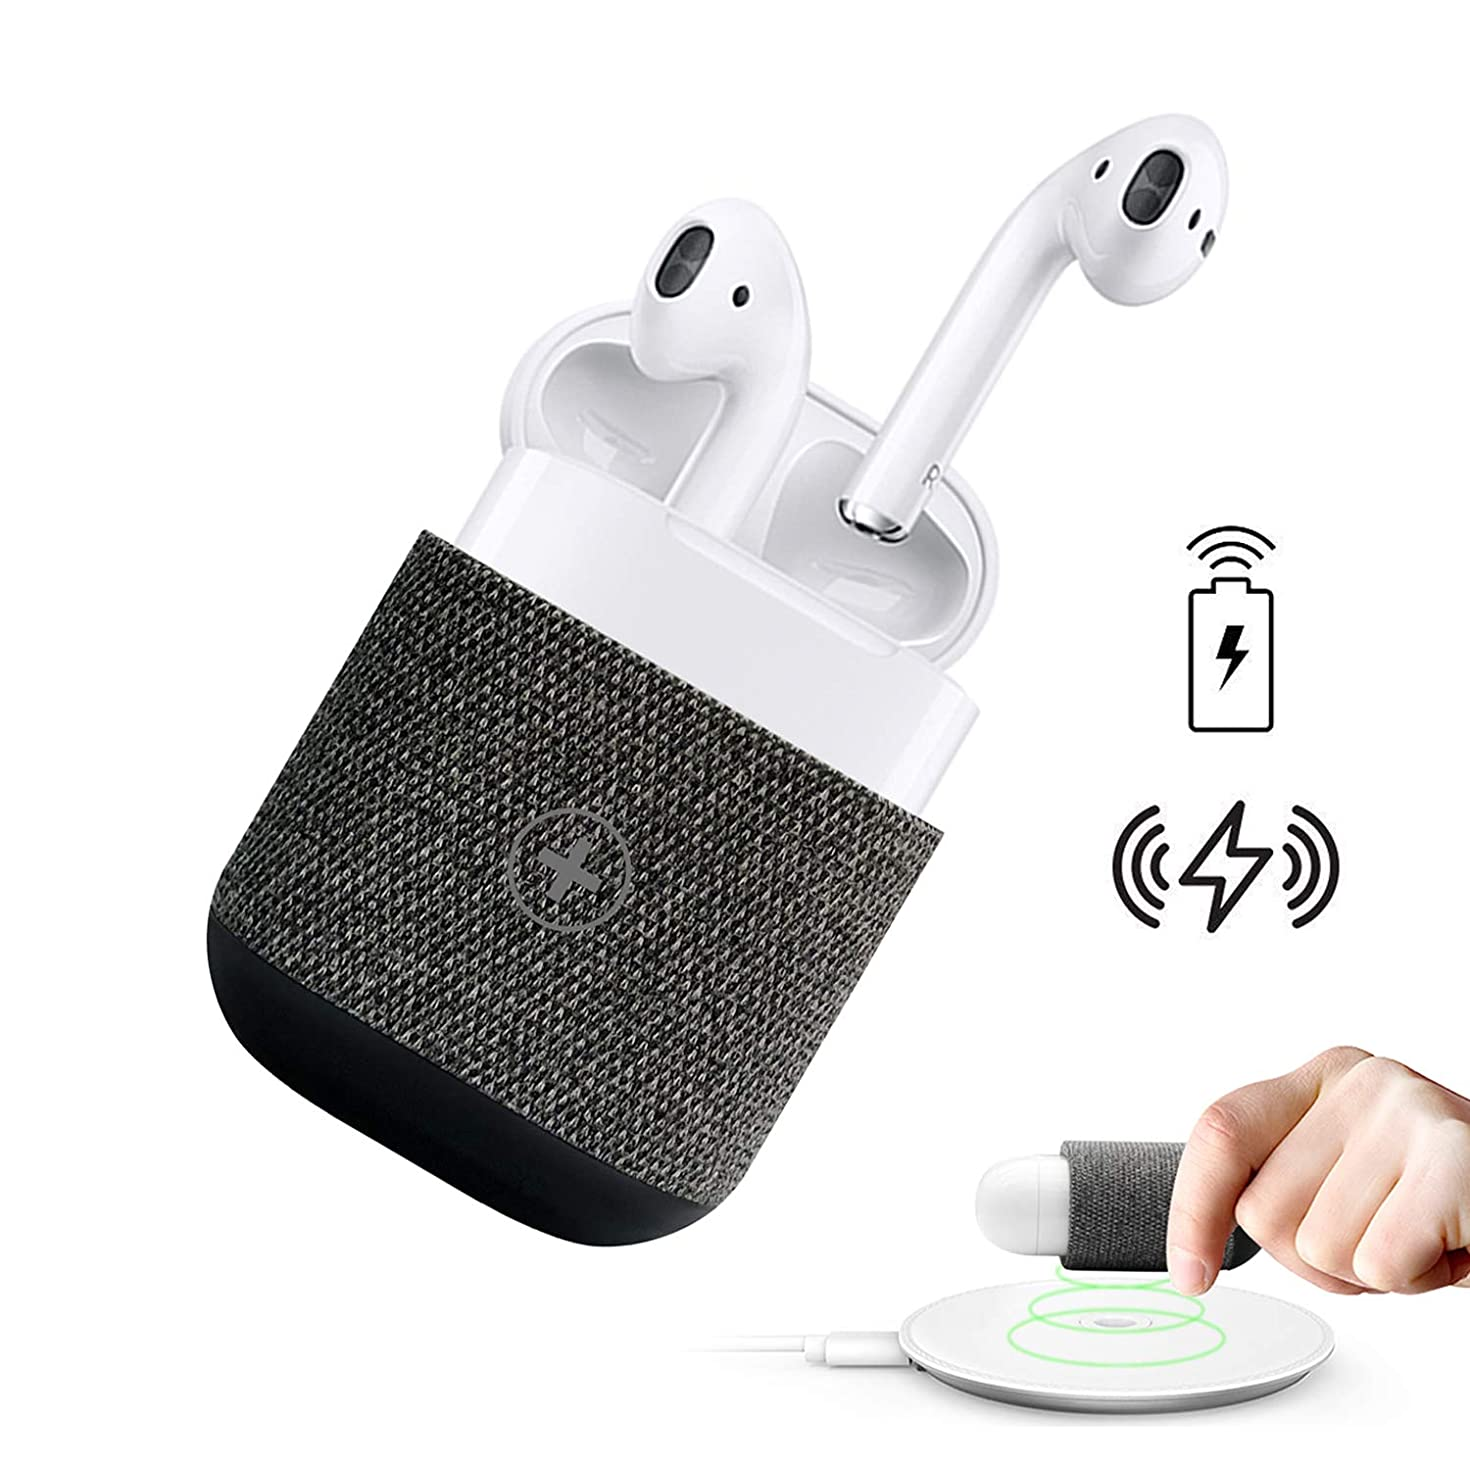 AirPods Case Cover - Uervoton Wireless Charging Case Accessories Protective Case for AirPods Wireless Charging, Compatible Any Qi Standard Wireless Charging Mats (a)